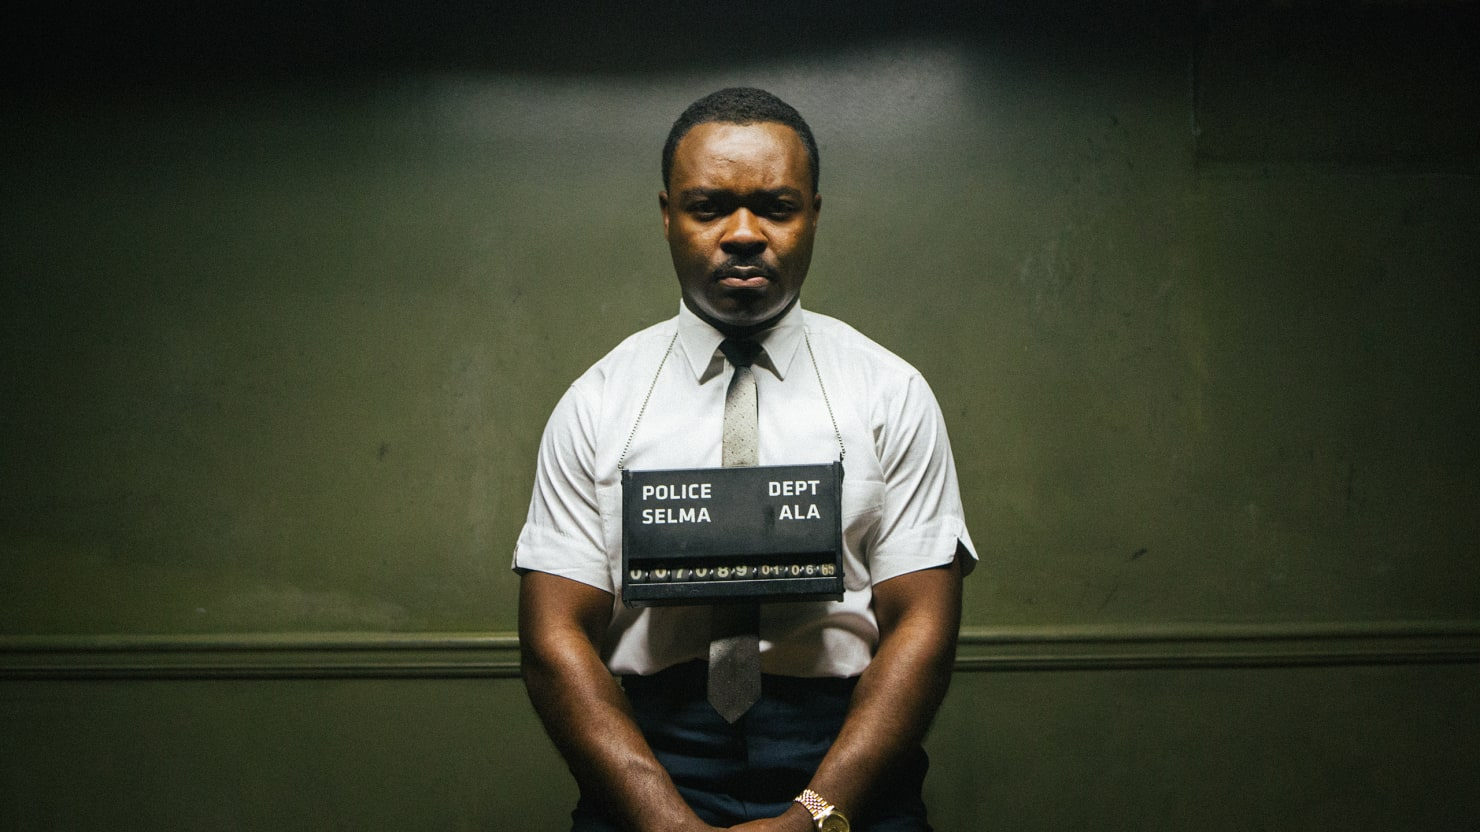 Dr. King Goes to Hollywood: The Flawed History of 'Selma'